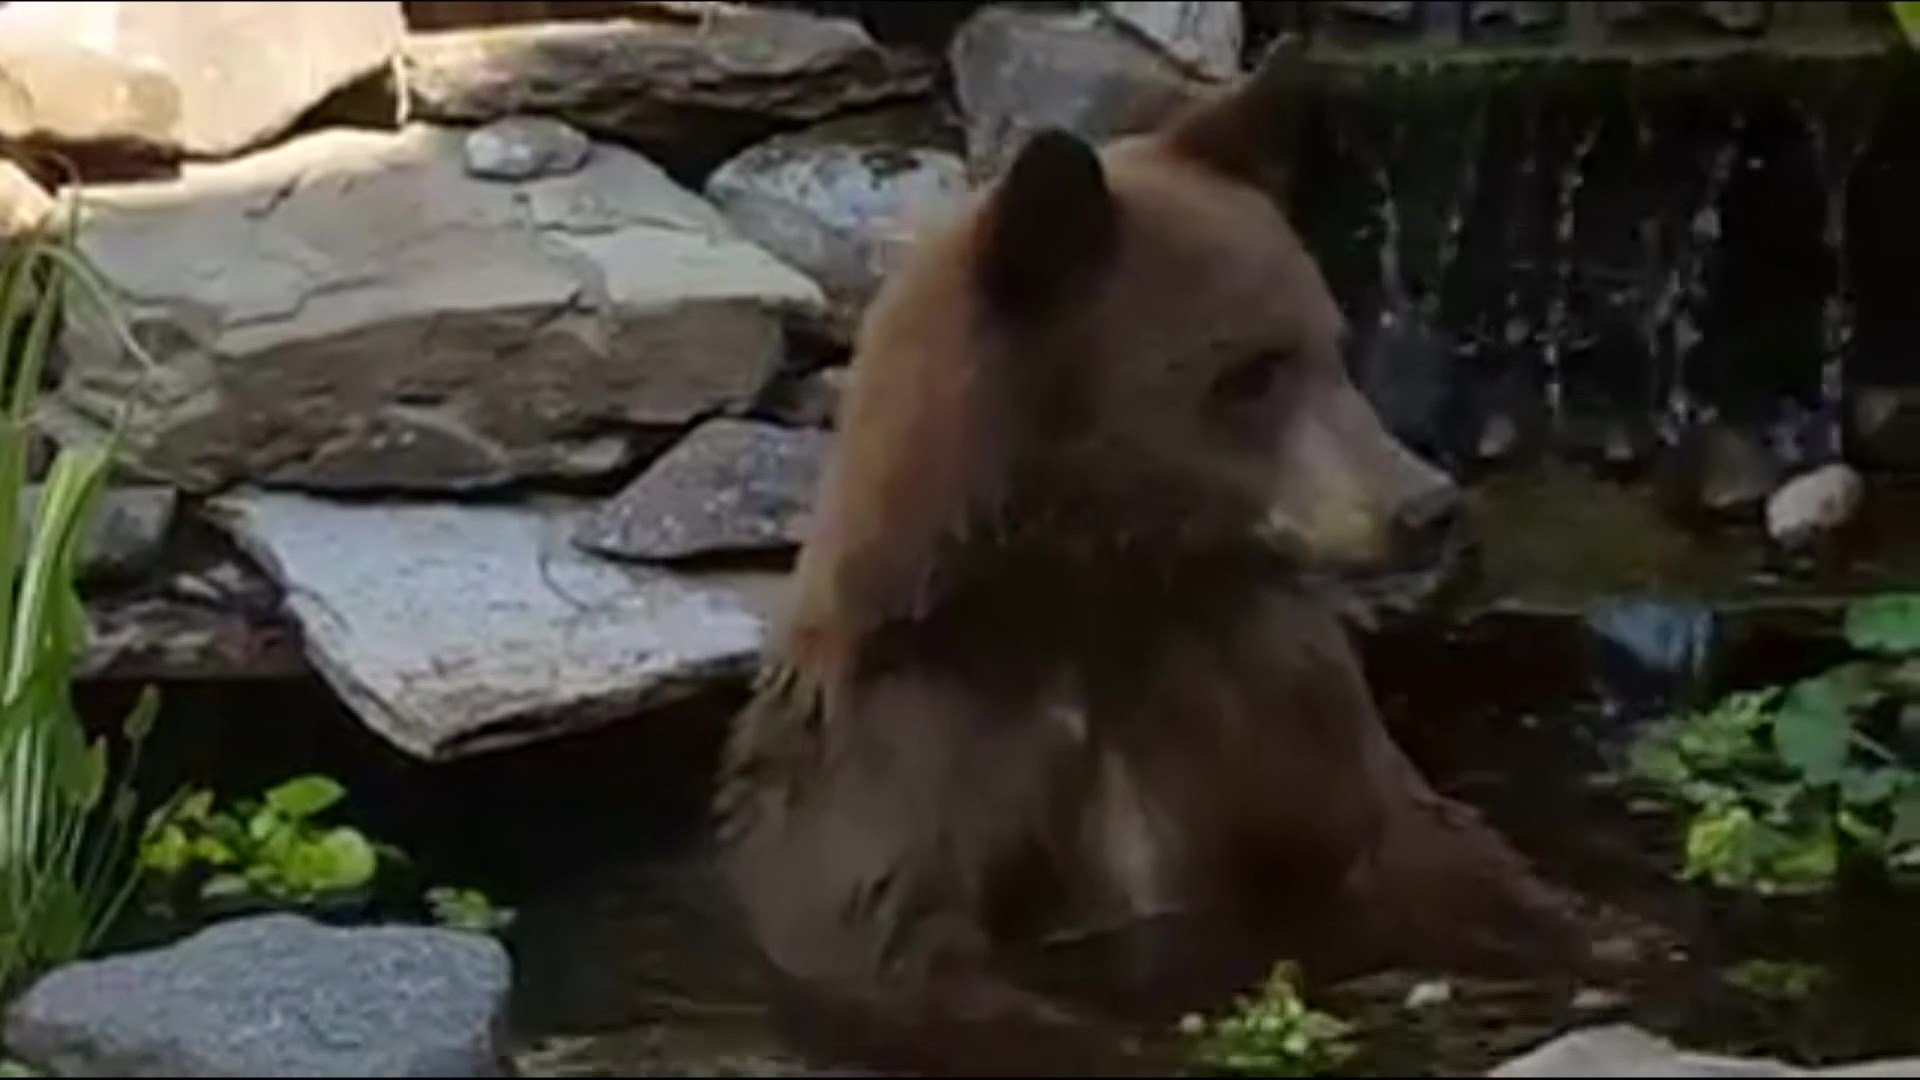 A young bear decided to take a dip in the koi pond of a home in Lockwood near Billings.